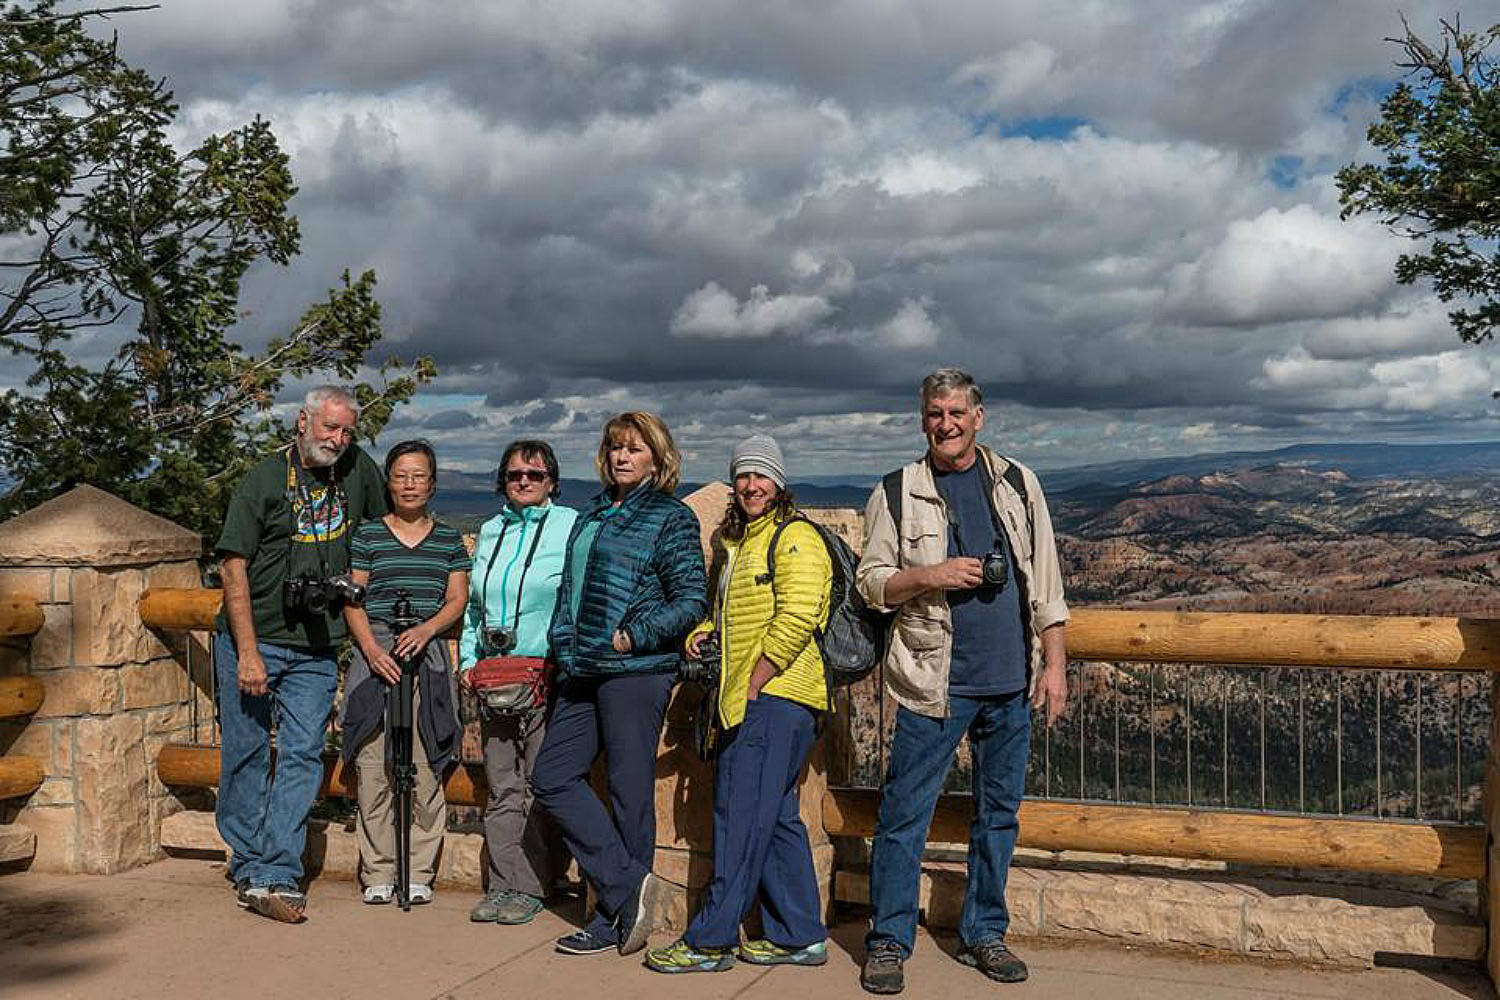 Group photo at Bryce Canyon National Park.